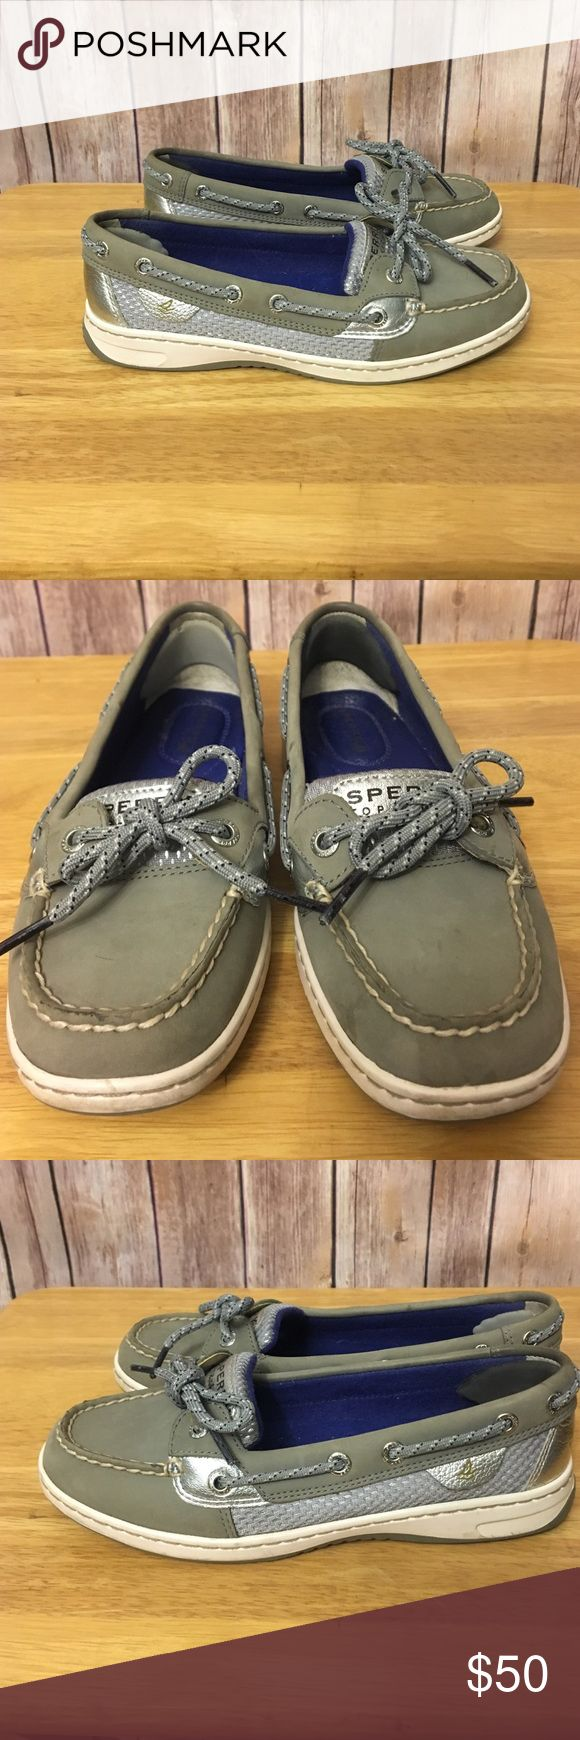 Sperry angelfish boat shoes Excellent used condition, sperry angelfish boat shoe. Size 6 Sperry Shoes Flats & Loafers